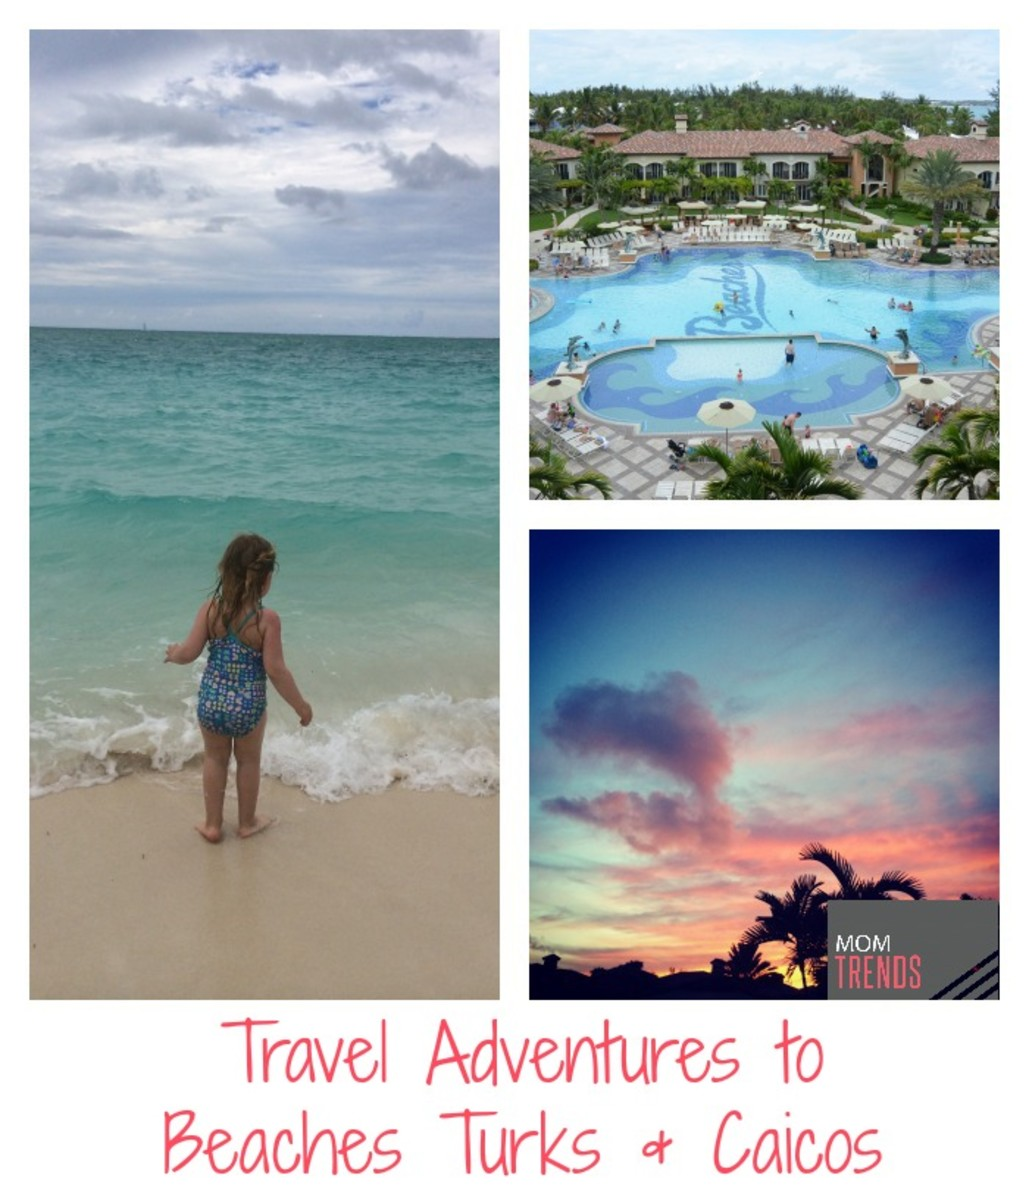 Travel Adventures to Beaches Turks & Caicos